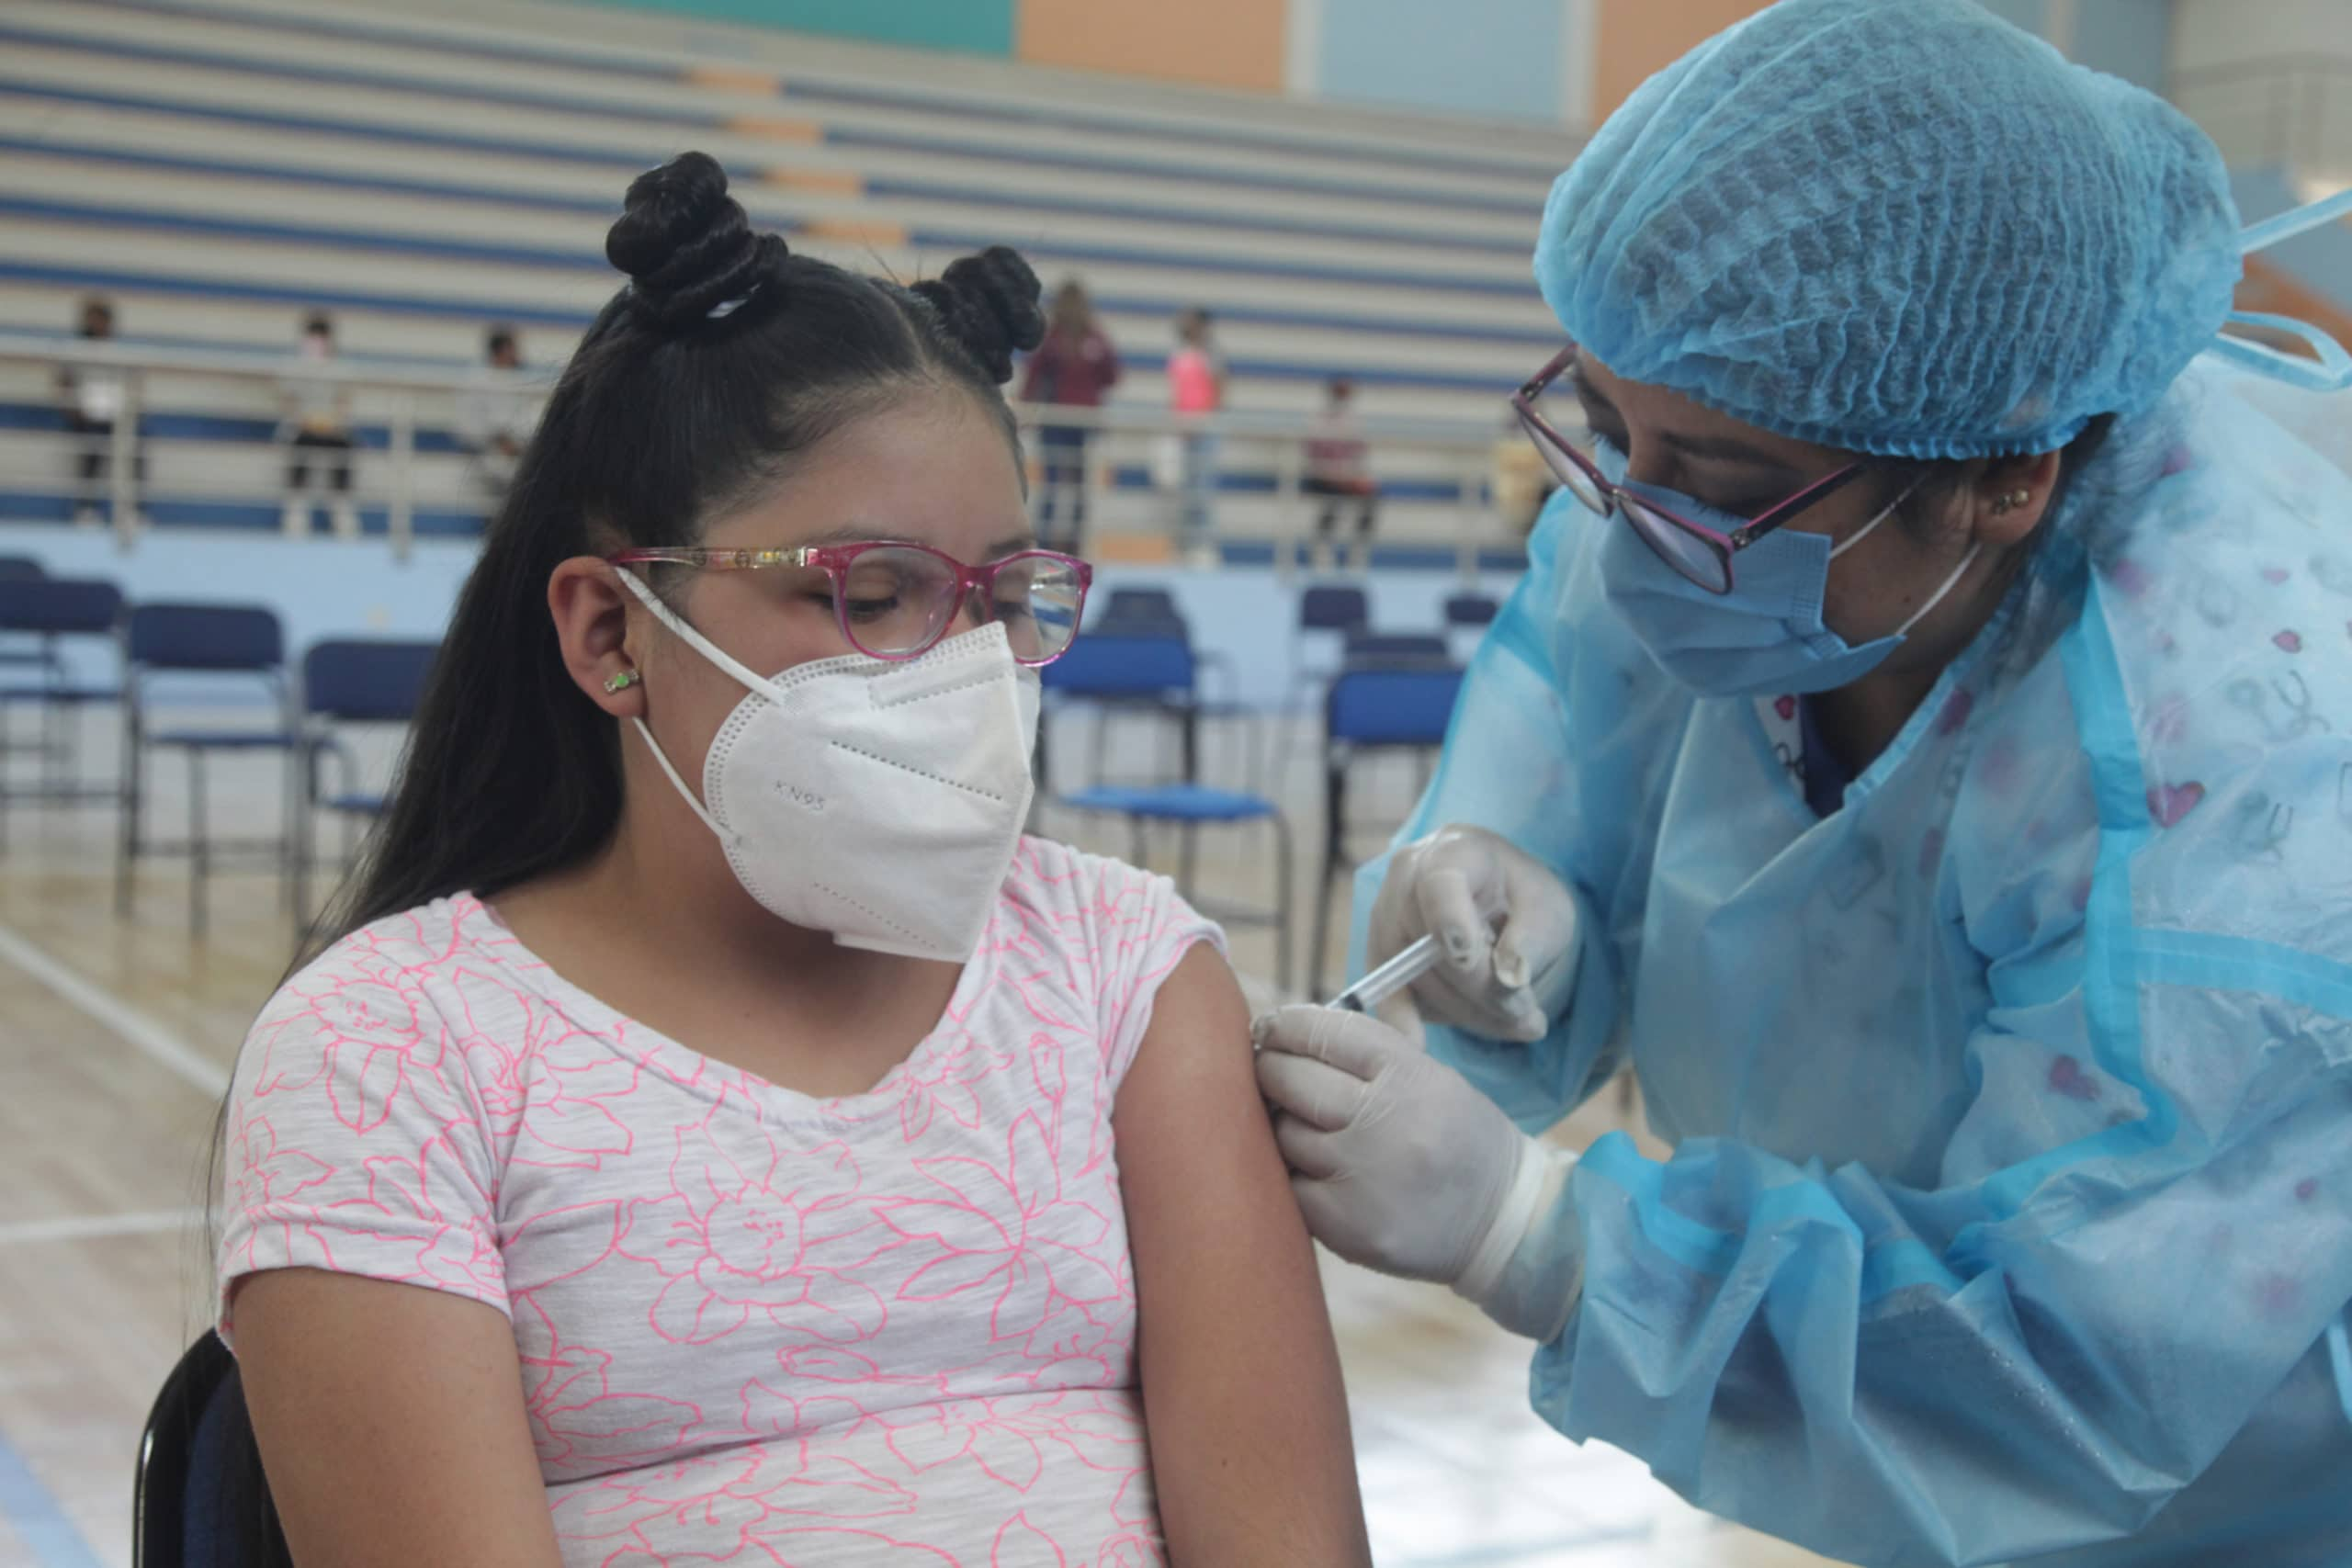 Ecuador Vaccinates 5 To 11 Year Olds Against COVID-19